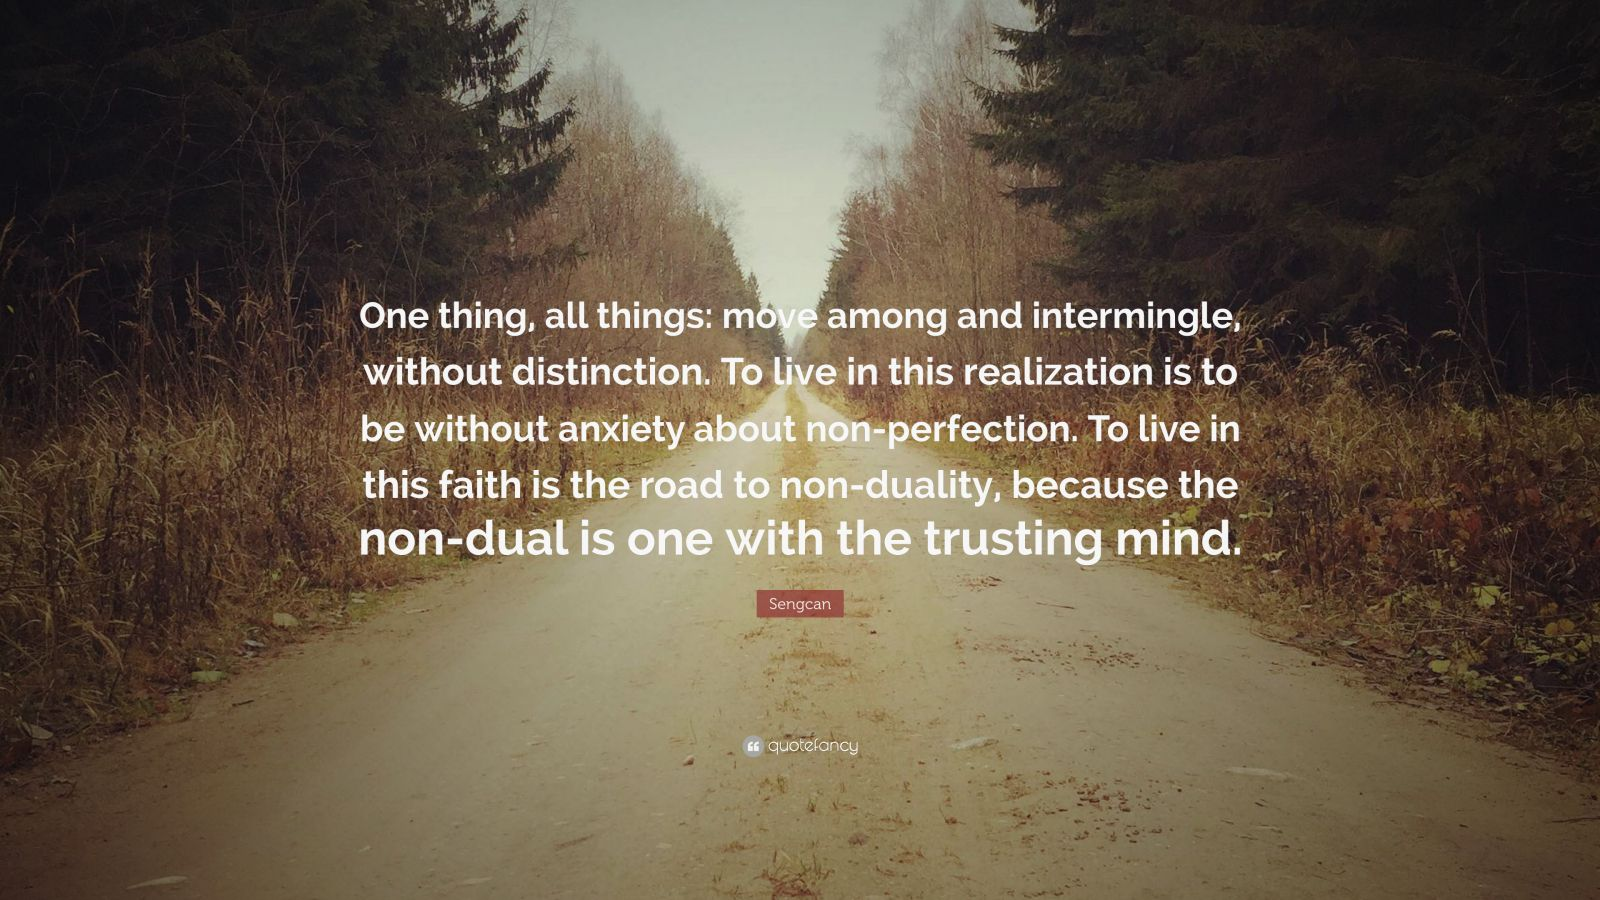 "Sengcan Quote: ""One thing, all things: move among and intermingle, without distinction. To live in this realization is to be without anxiety about non-perfection. To live in this faith is the road to non-duality, because the non-dual is one with the trusting mind."""